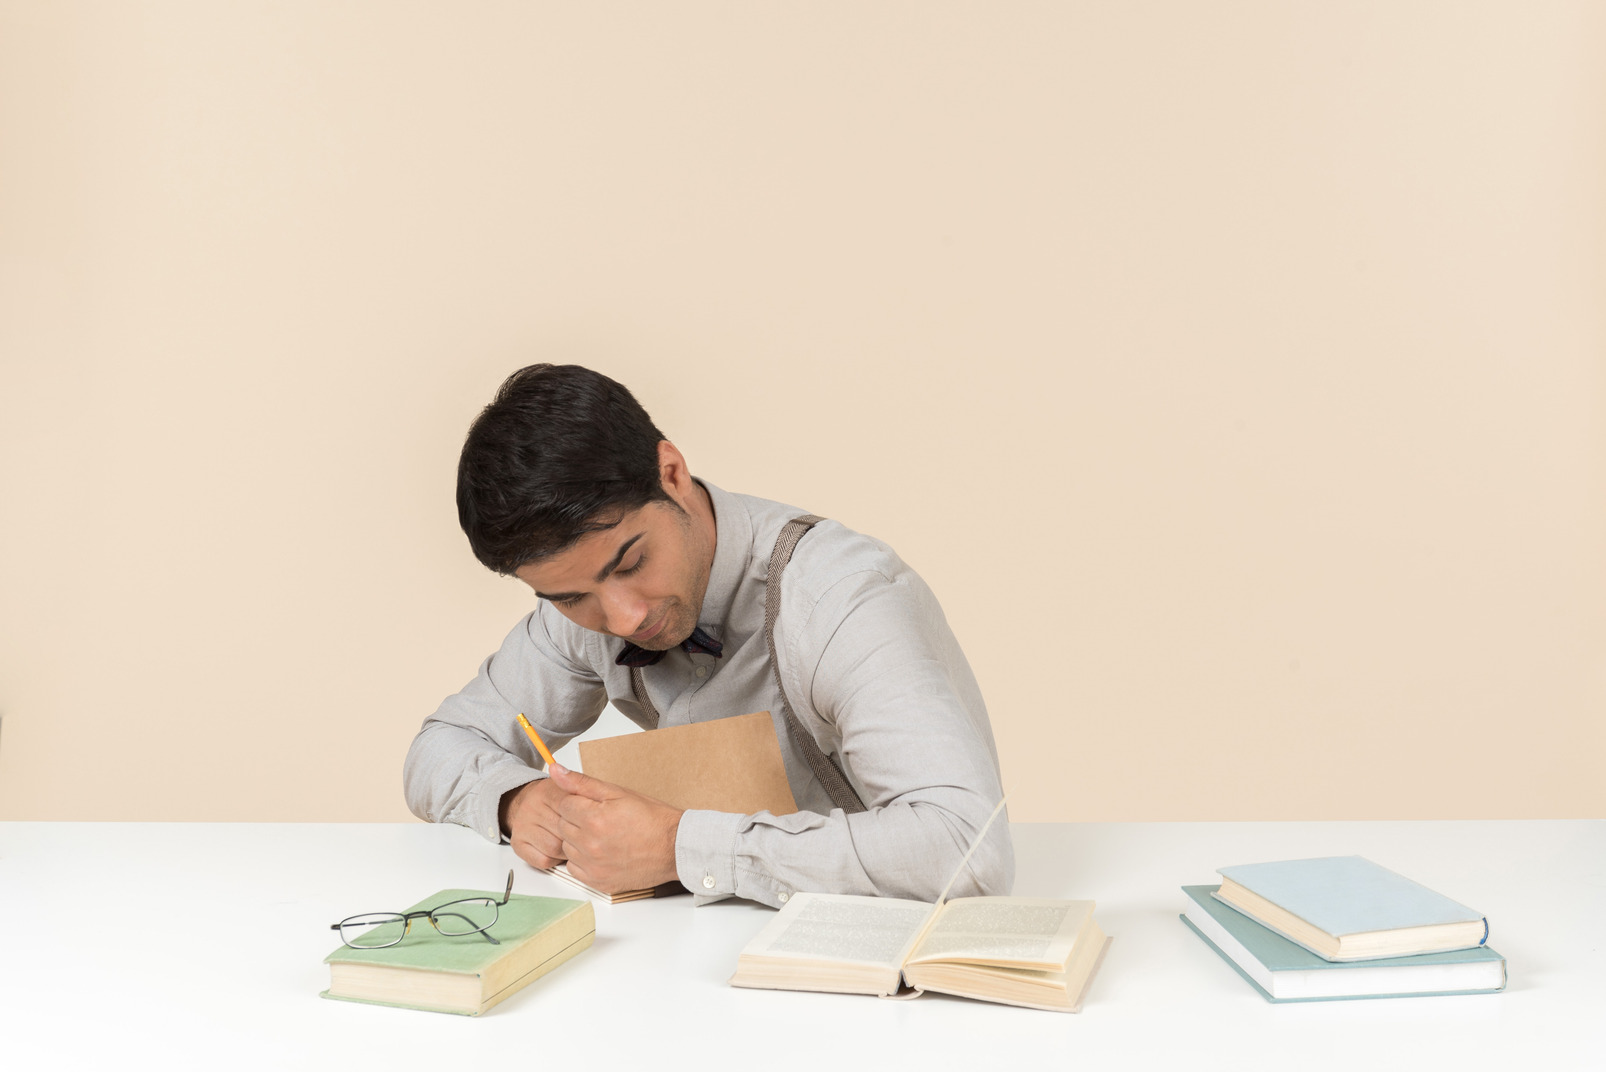 Young adult student sitting at the table and writing something down in the book